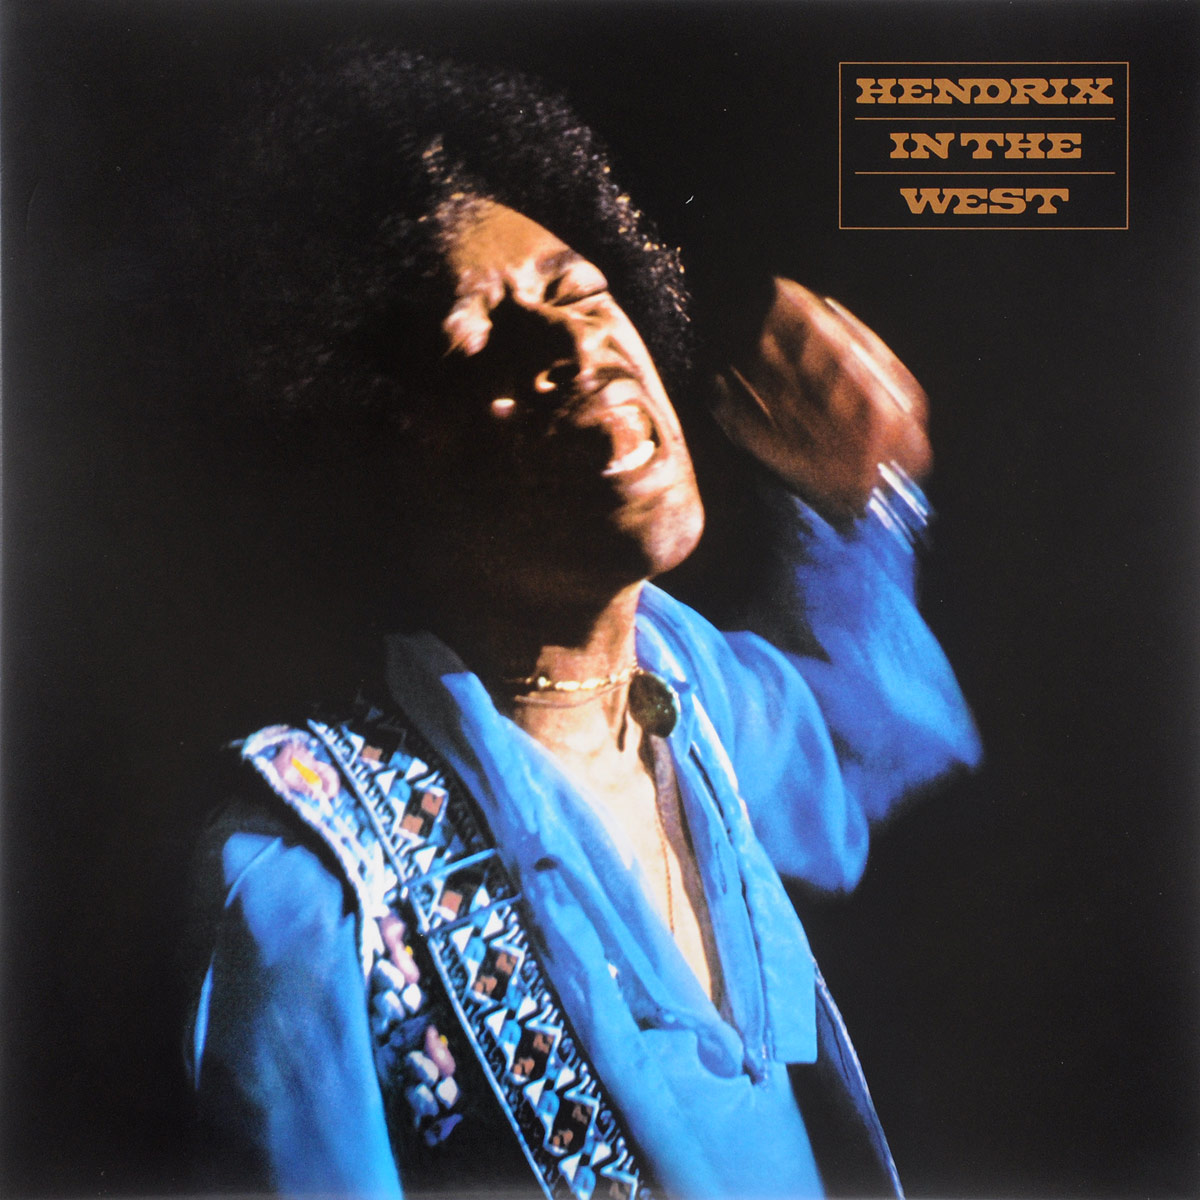 Джими Хендрикс Jimi Hendrix. Hendrix In The West (2 LP) джими хендрикс jimi hendrix the cry of love lp